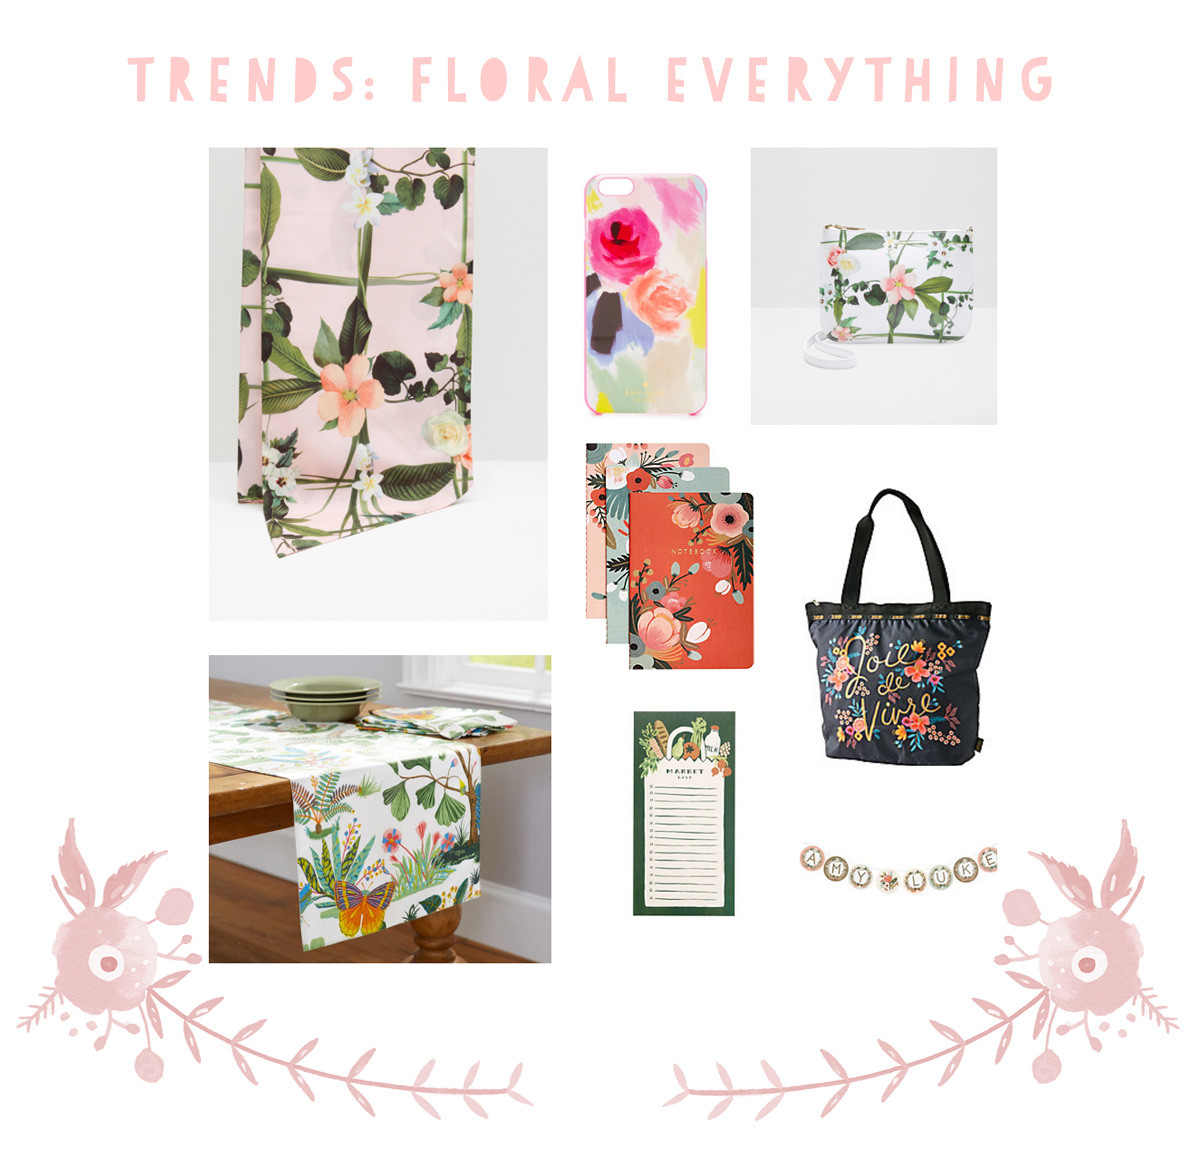 Crazy for this floral trend